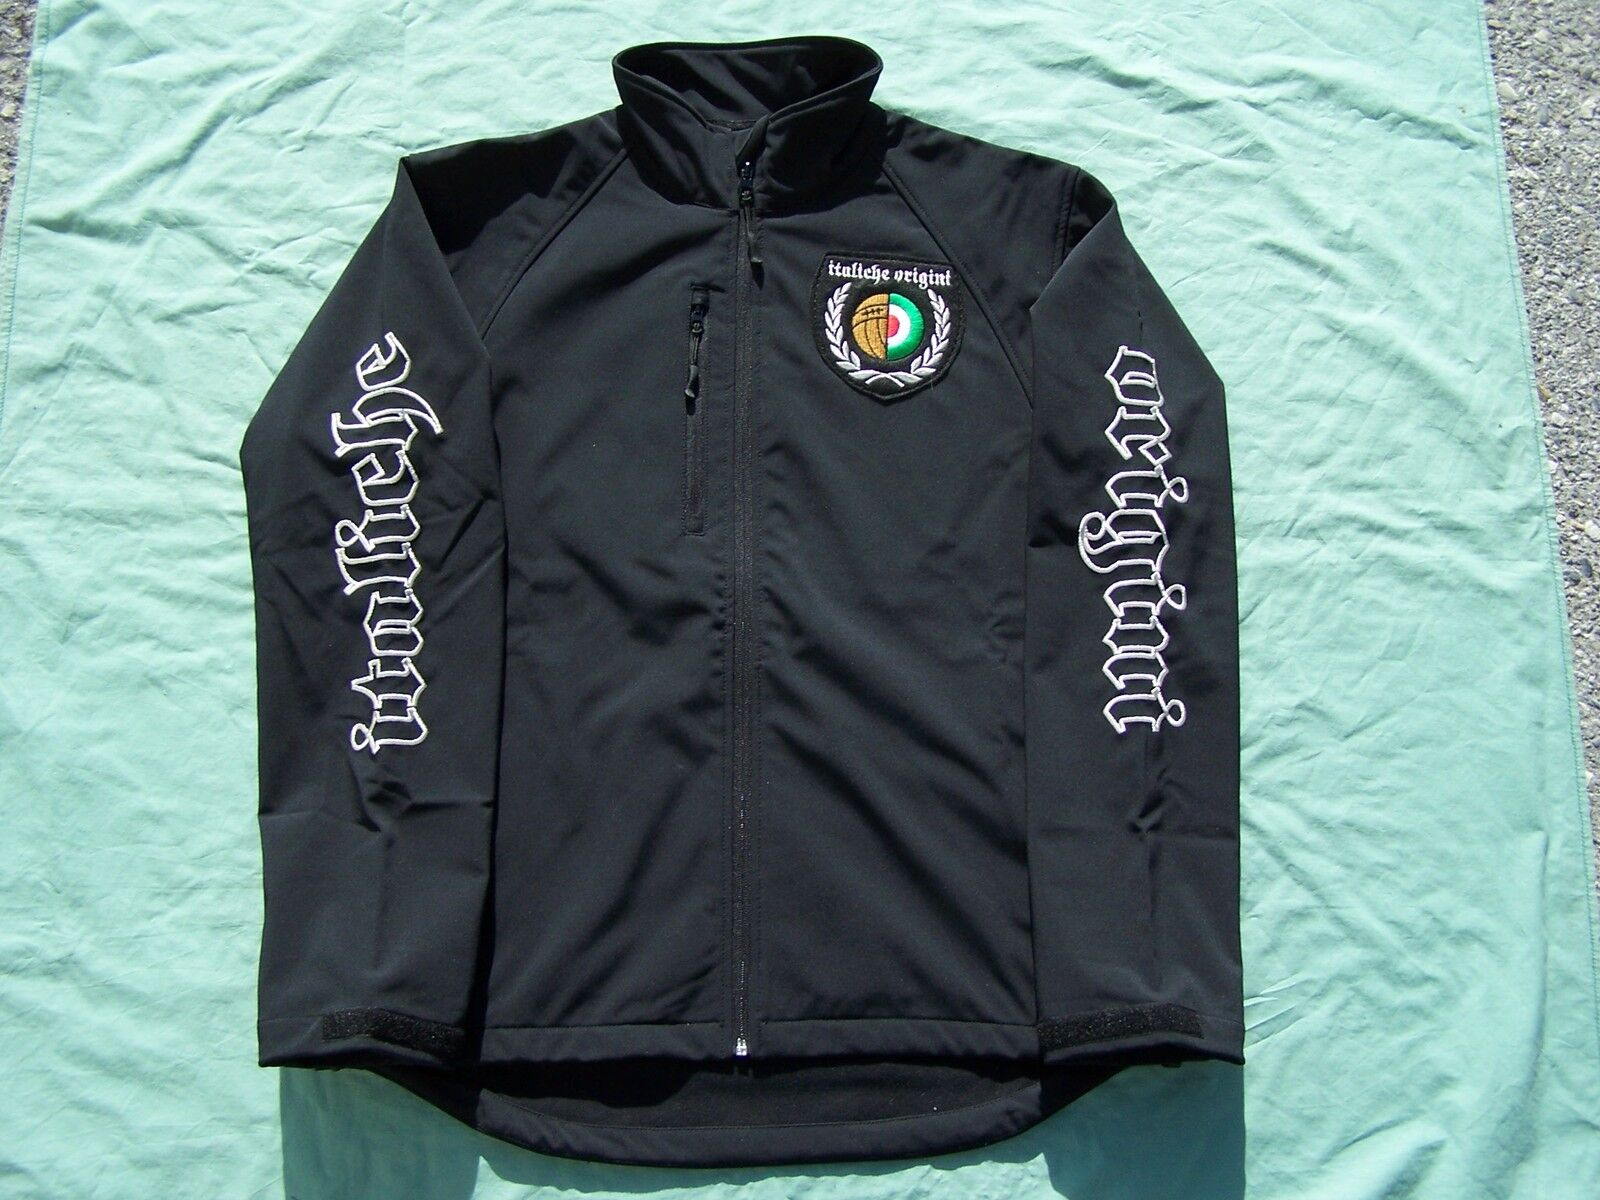 Giubbotti ITALICHE ORIGINI SOFT SHELL London ULTRAS